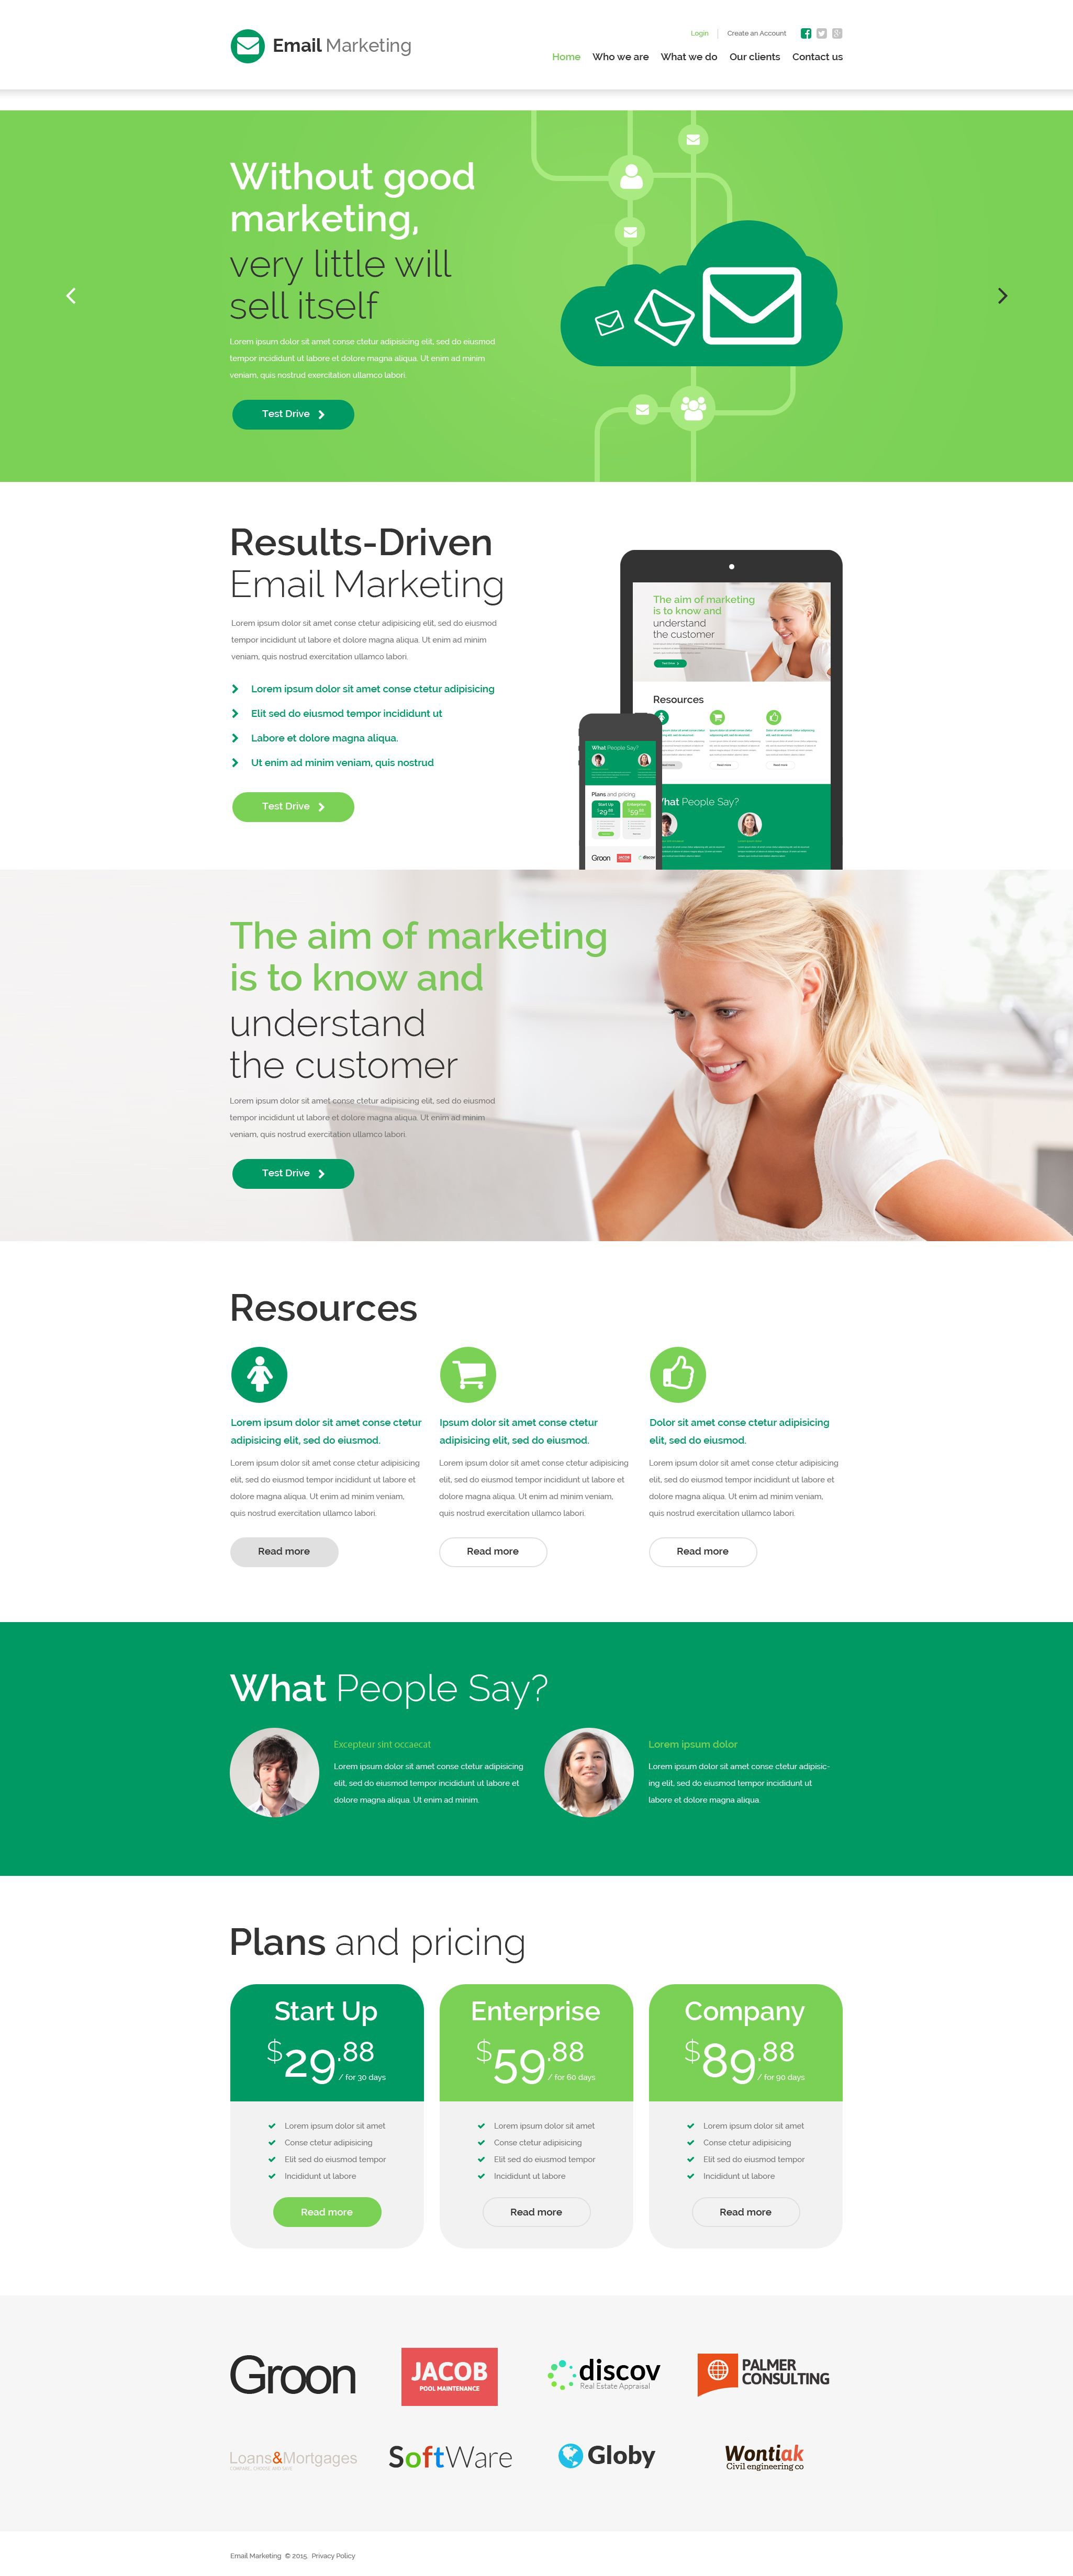 The E-mail Marketing Bootstrap Design 54007, one of the best website templates of its kind (business, most popular), also known as e-mail marketing website template, business website template, success company website template, enterprise solution website template, business website template, industry website template, technical website template, clients website template, customer support website template, automate website template, flow website template, services website template, plug-in website template, flex website template, profile website template, principles website template, web products website template, technology system and related with e-mail marketing, business, success company, enterprise solution, business, industry, technical, clients, customer support, automate, flow, services, plug-in, flex, profile, principles, web products, technology system, etc.